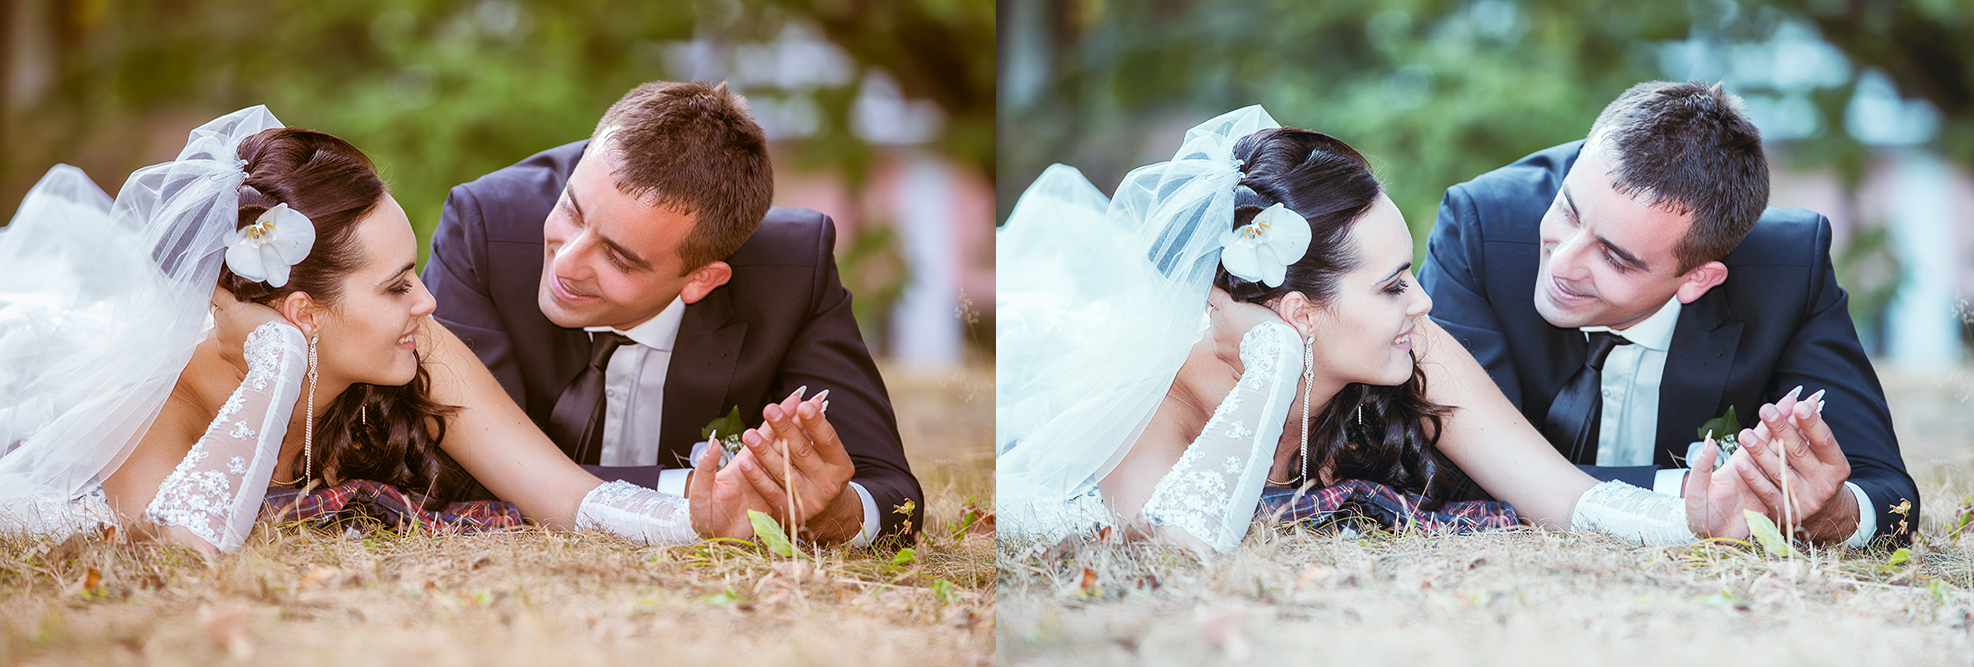 143 Wedding Photoshop Actions Collection (Action for photoshop CS5,CS6,CC) example image 3